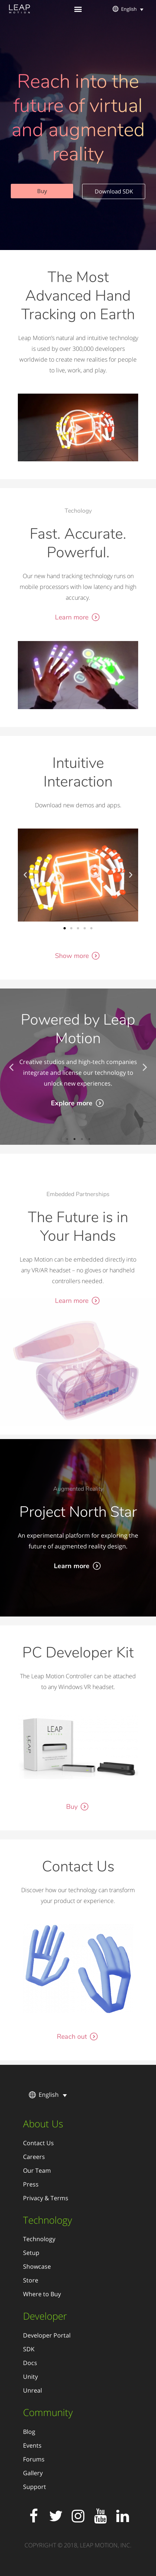 Example of Design for Science, Engineering & Technology, Mobile Landing Page by leapmotion.com   Mobile Landing Page Design